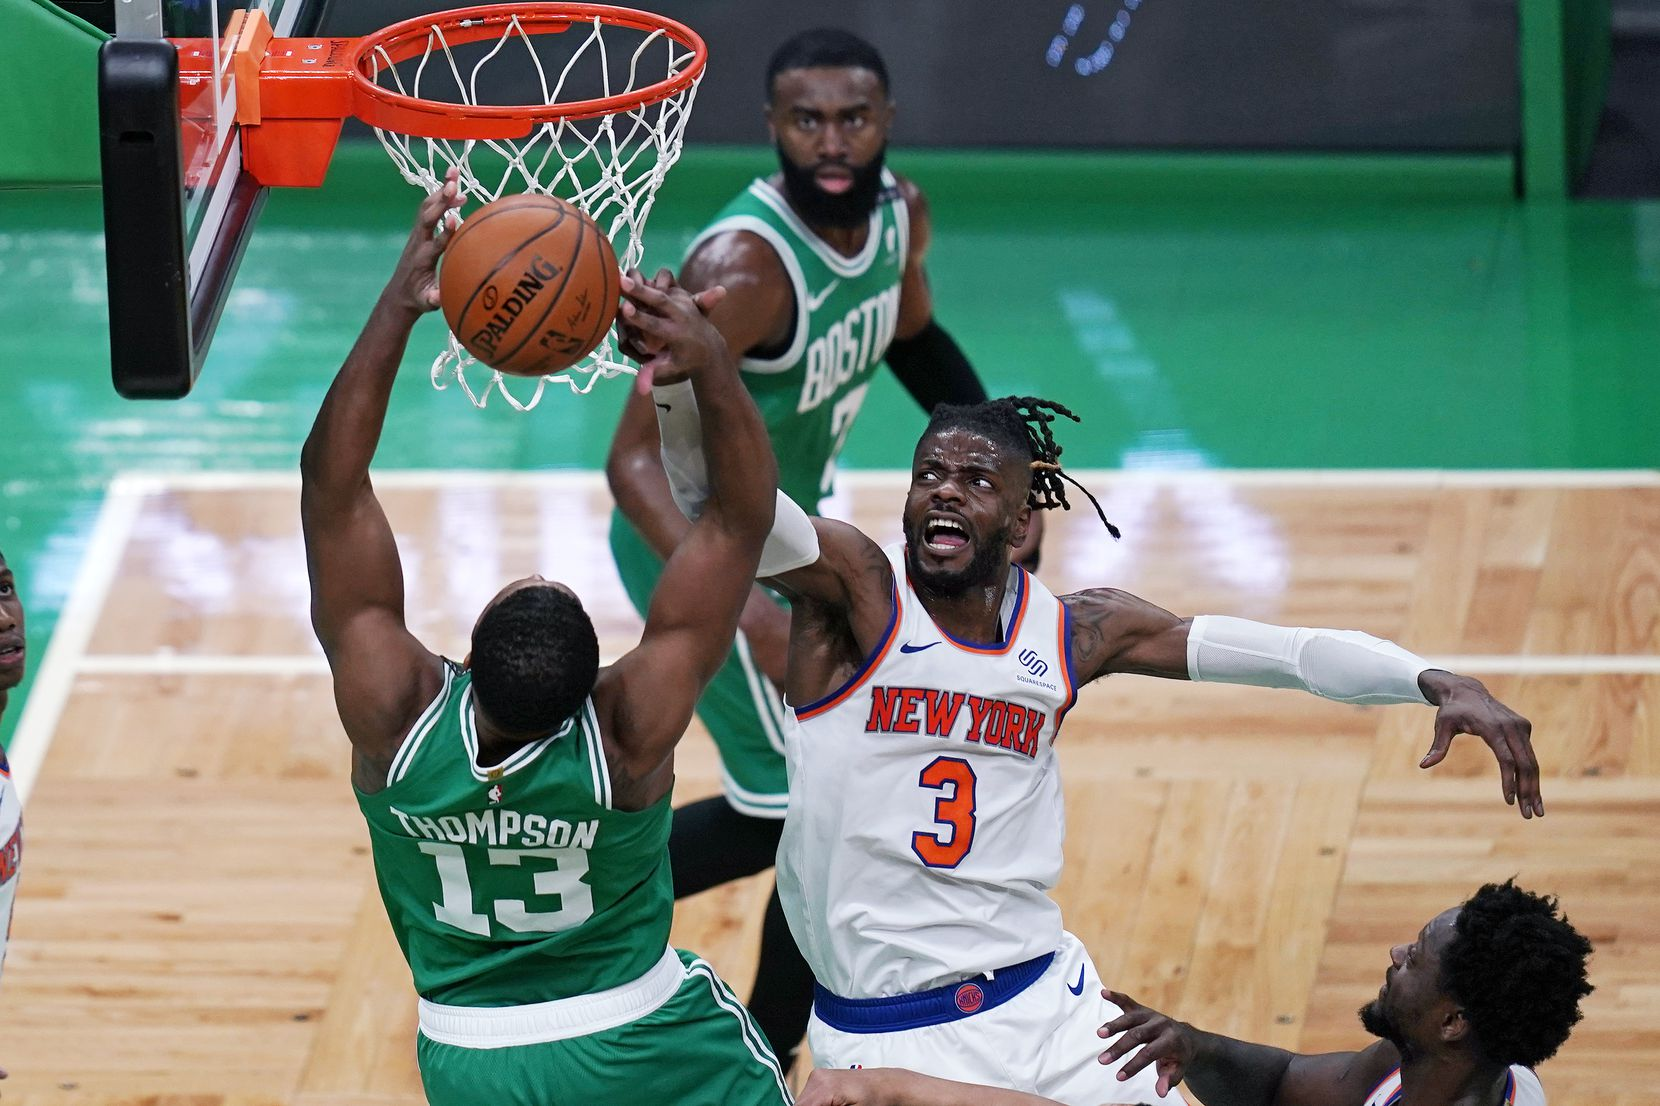 New York Knicks center Nerlens Noel (3) blocks a shot by Boston Celtics center Tristan Thompson (13) during the first half of an NBA basketball game Wednesday, April 7, 2021, in Boston.